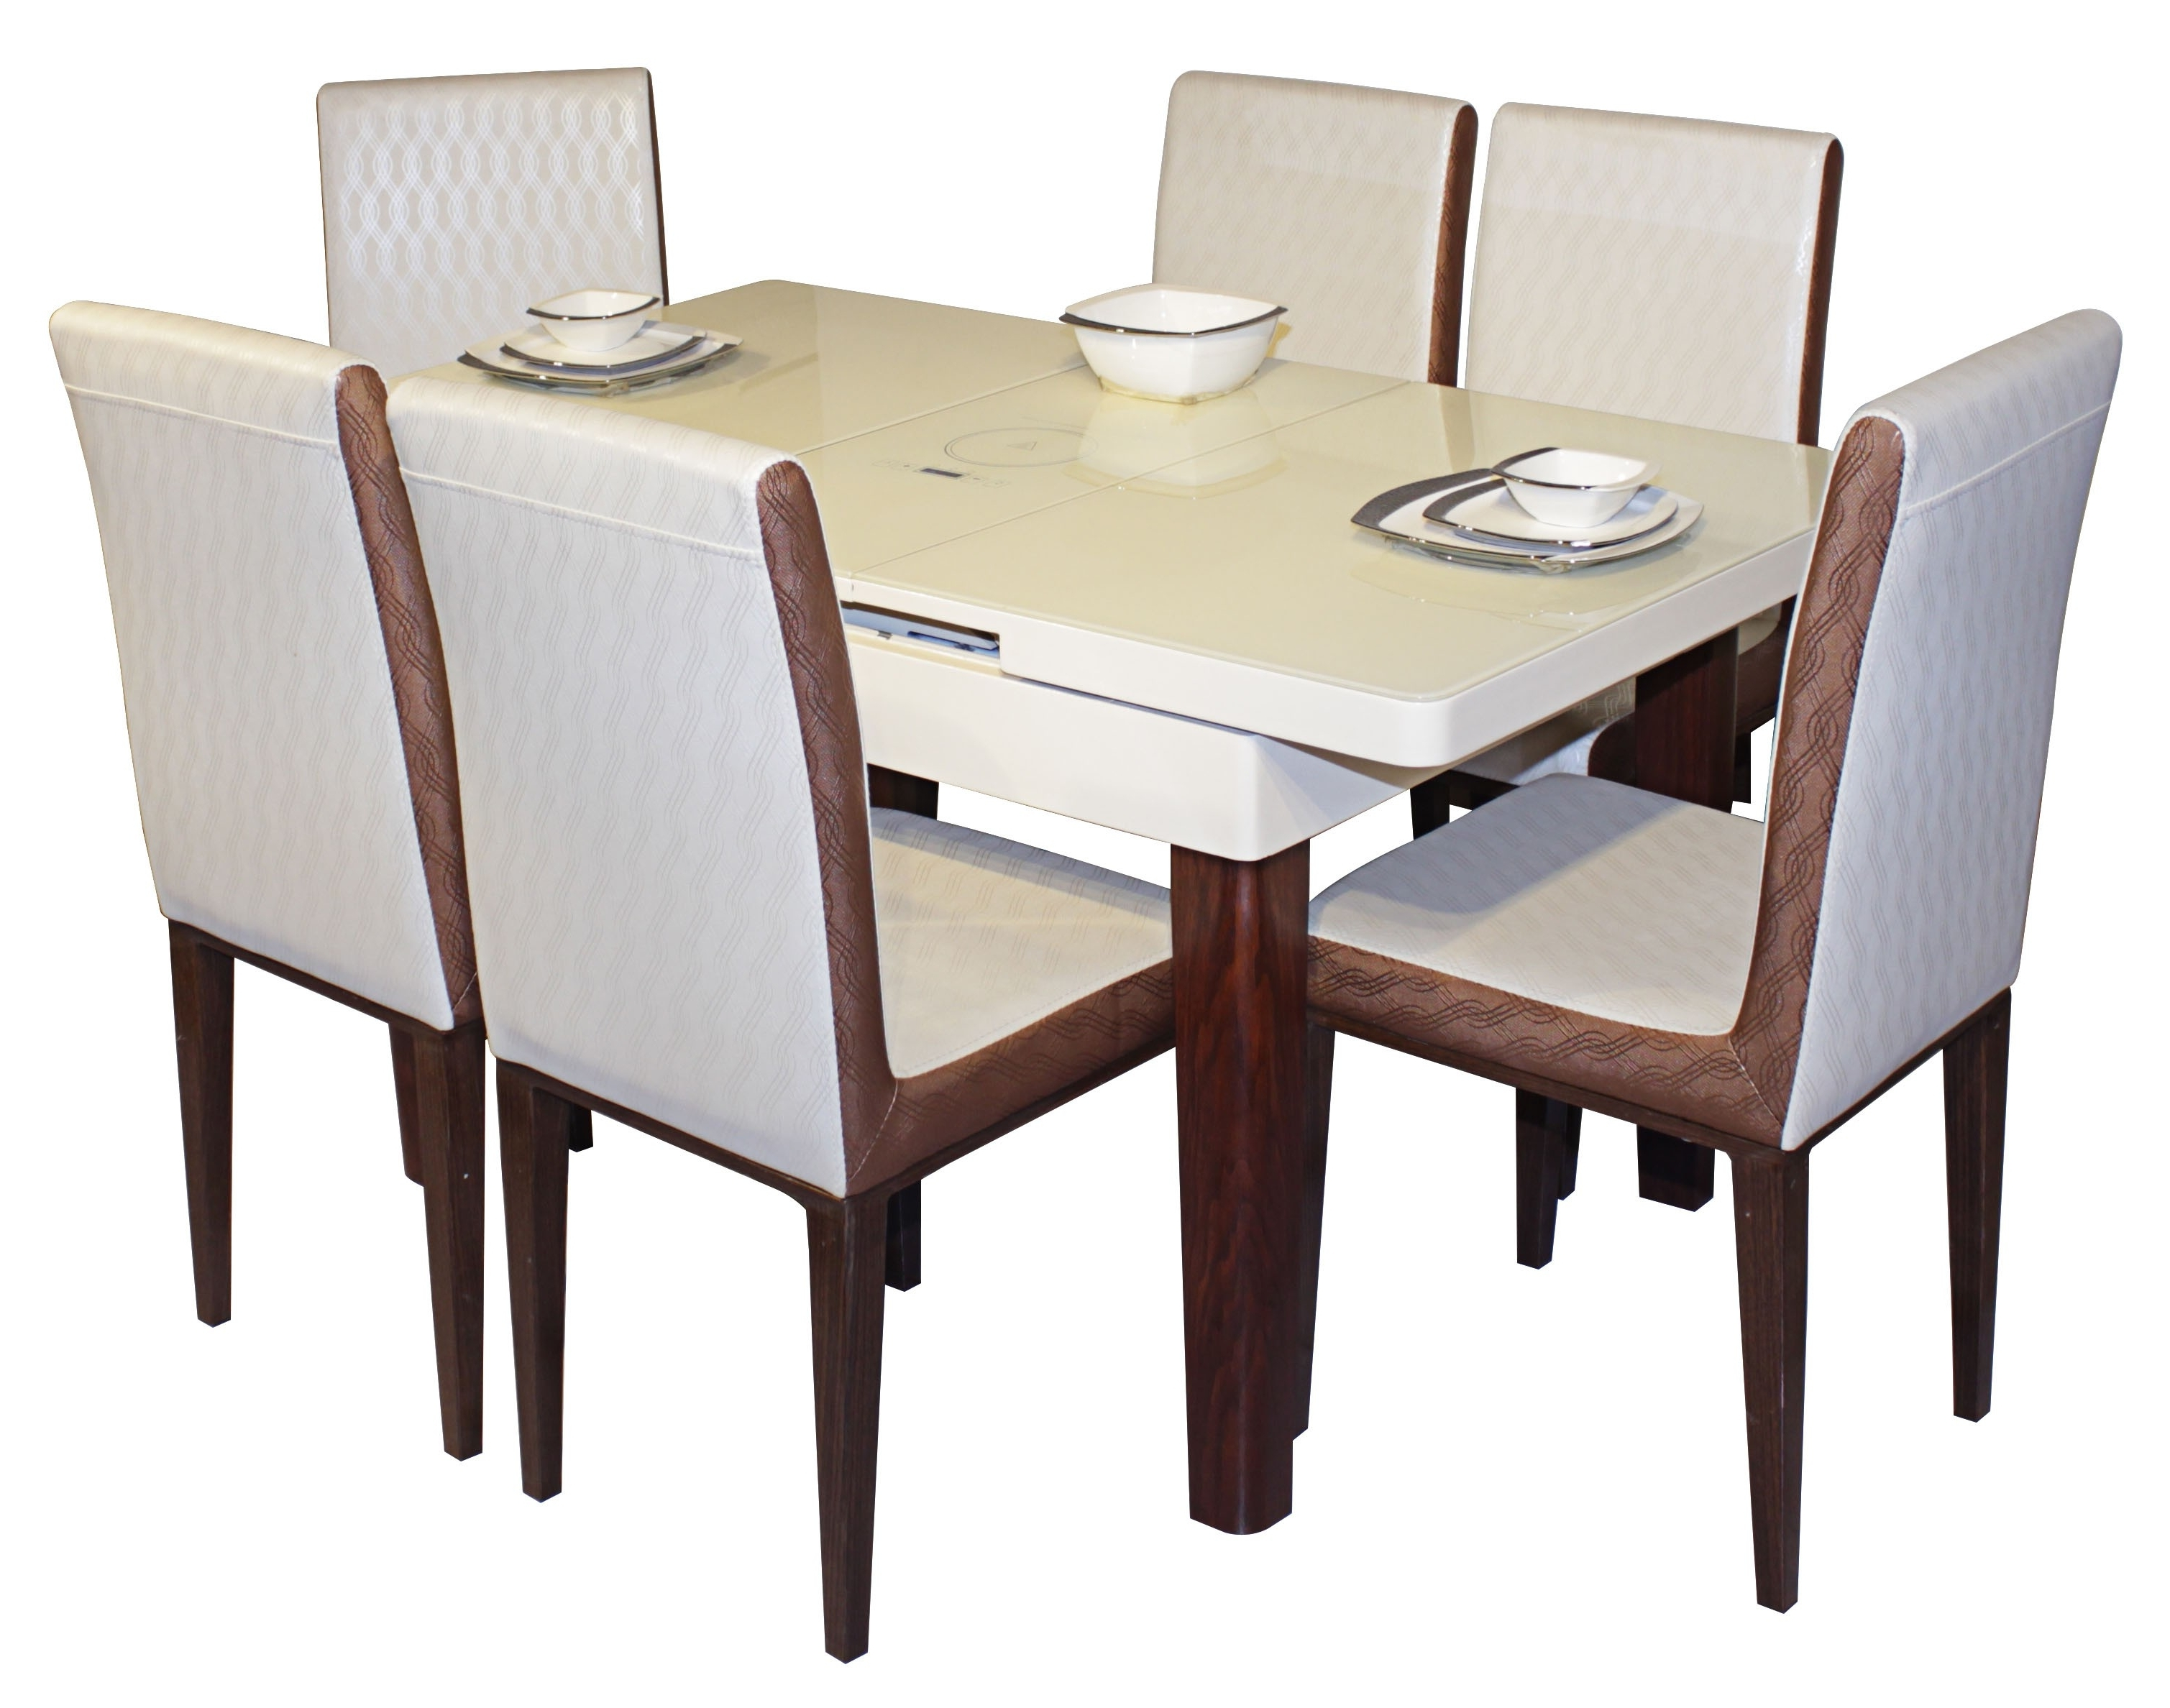 Widely Used 6 Seater Dining Tables With Galassia 6 Seater Dining Table Set (View 7 of 25)